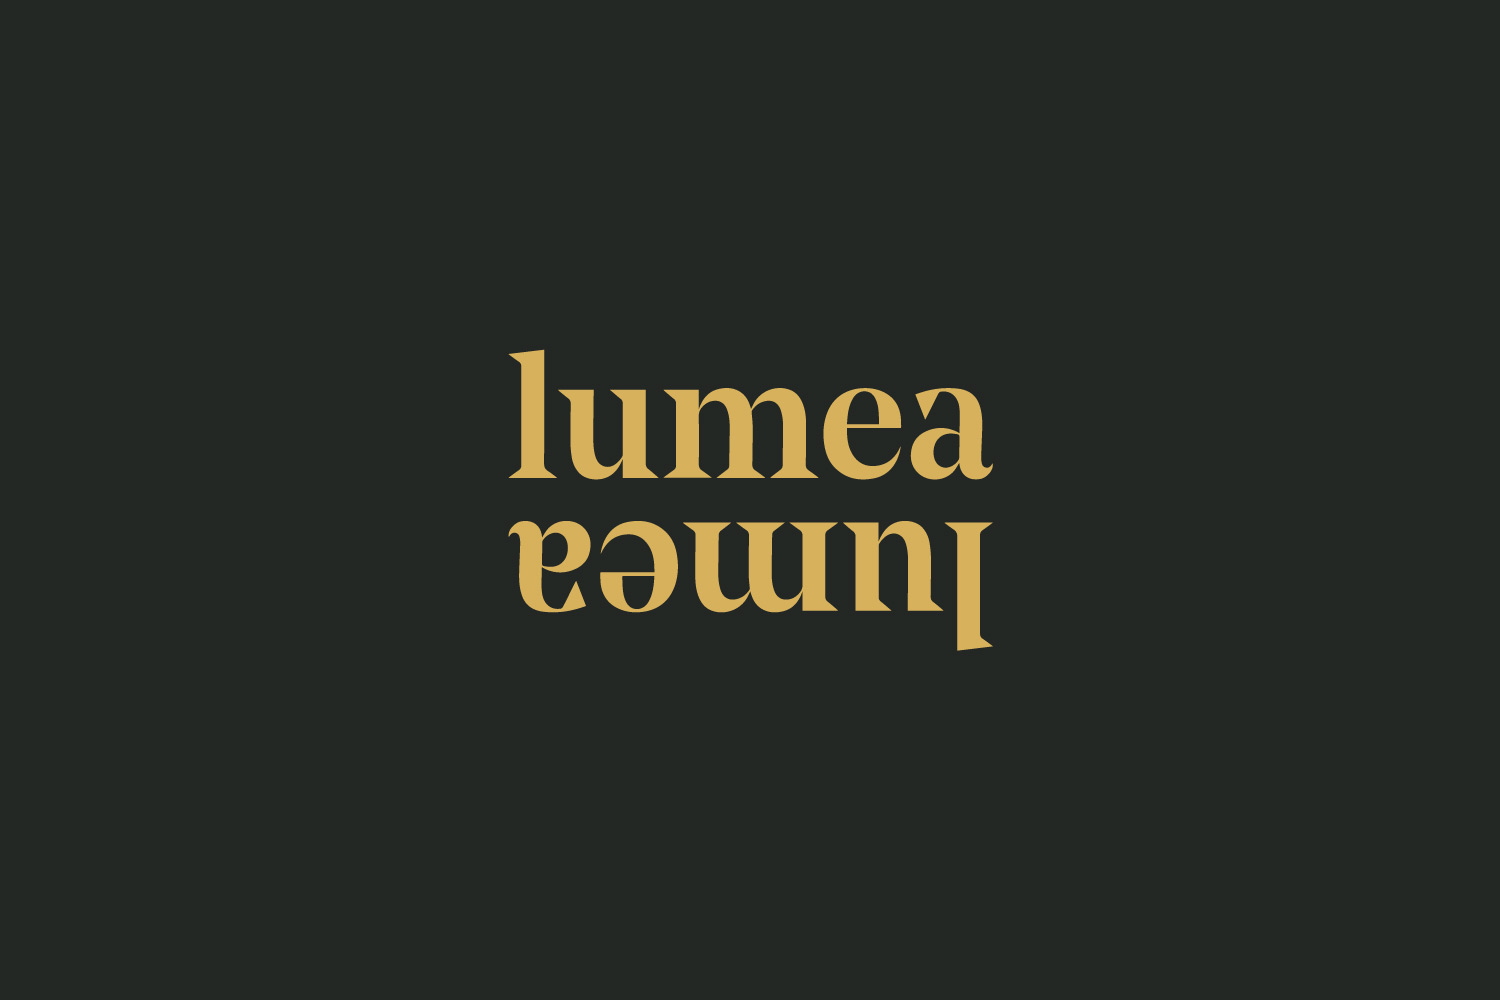 Lumea Photo branding design by Now or Never Design